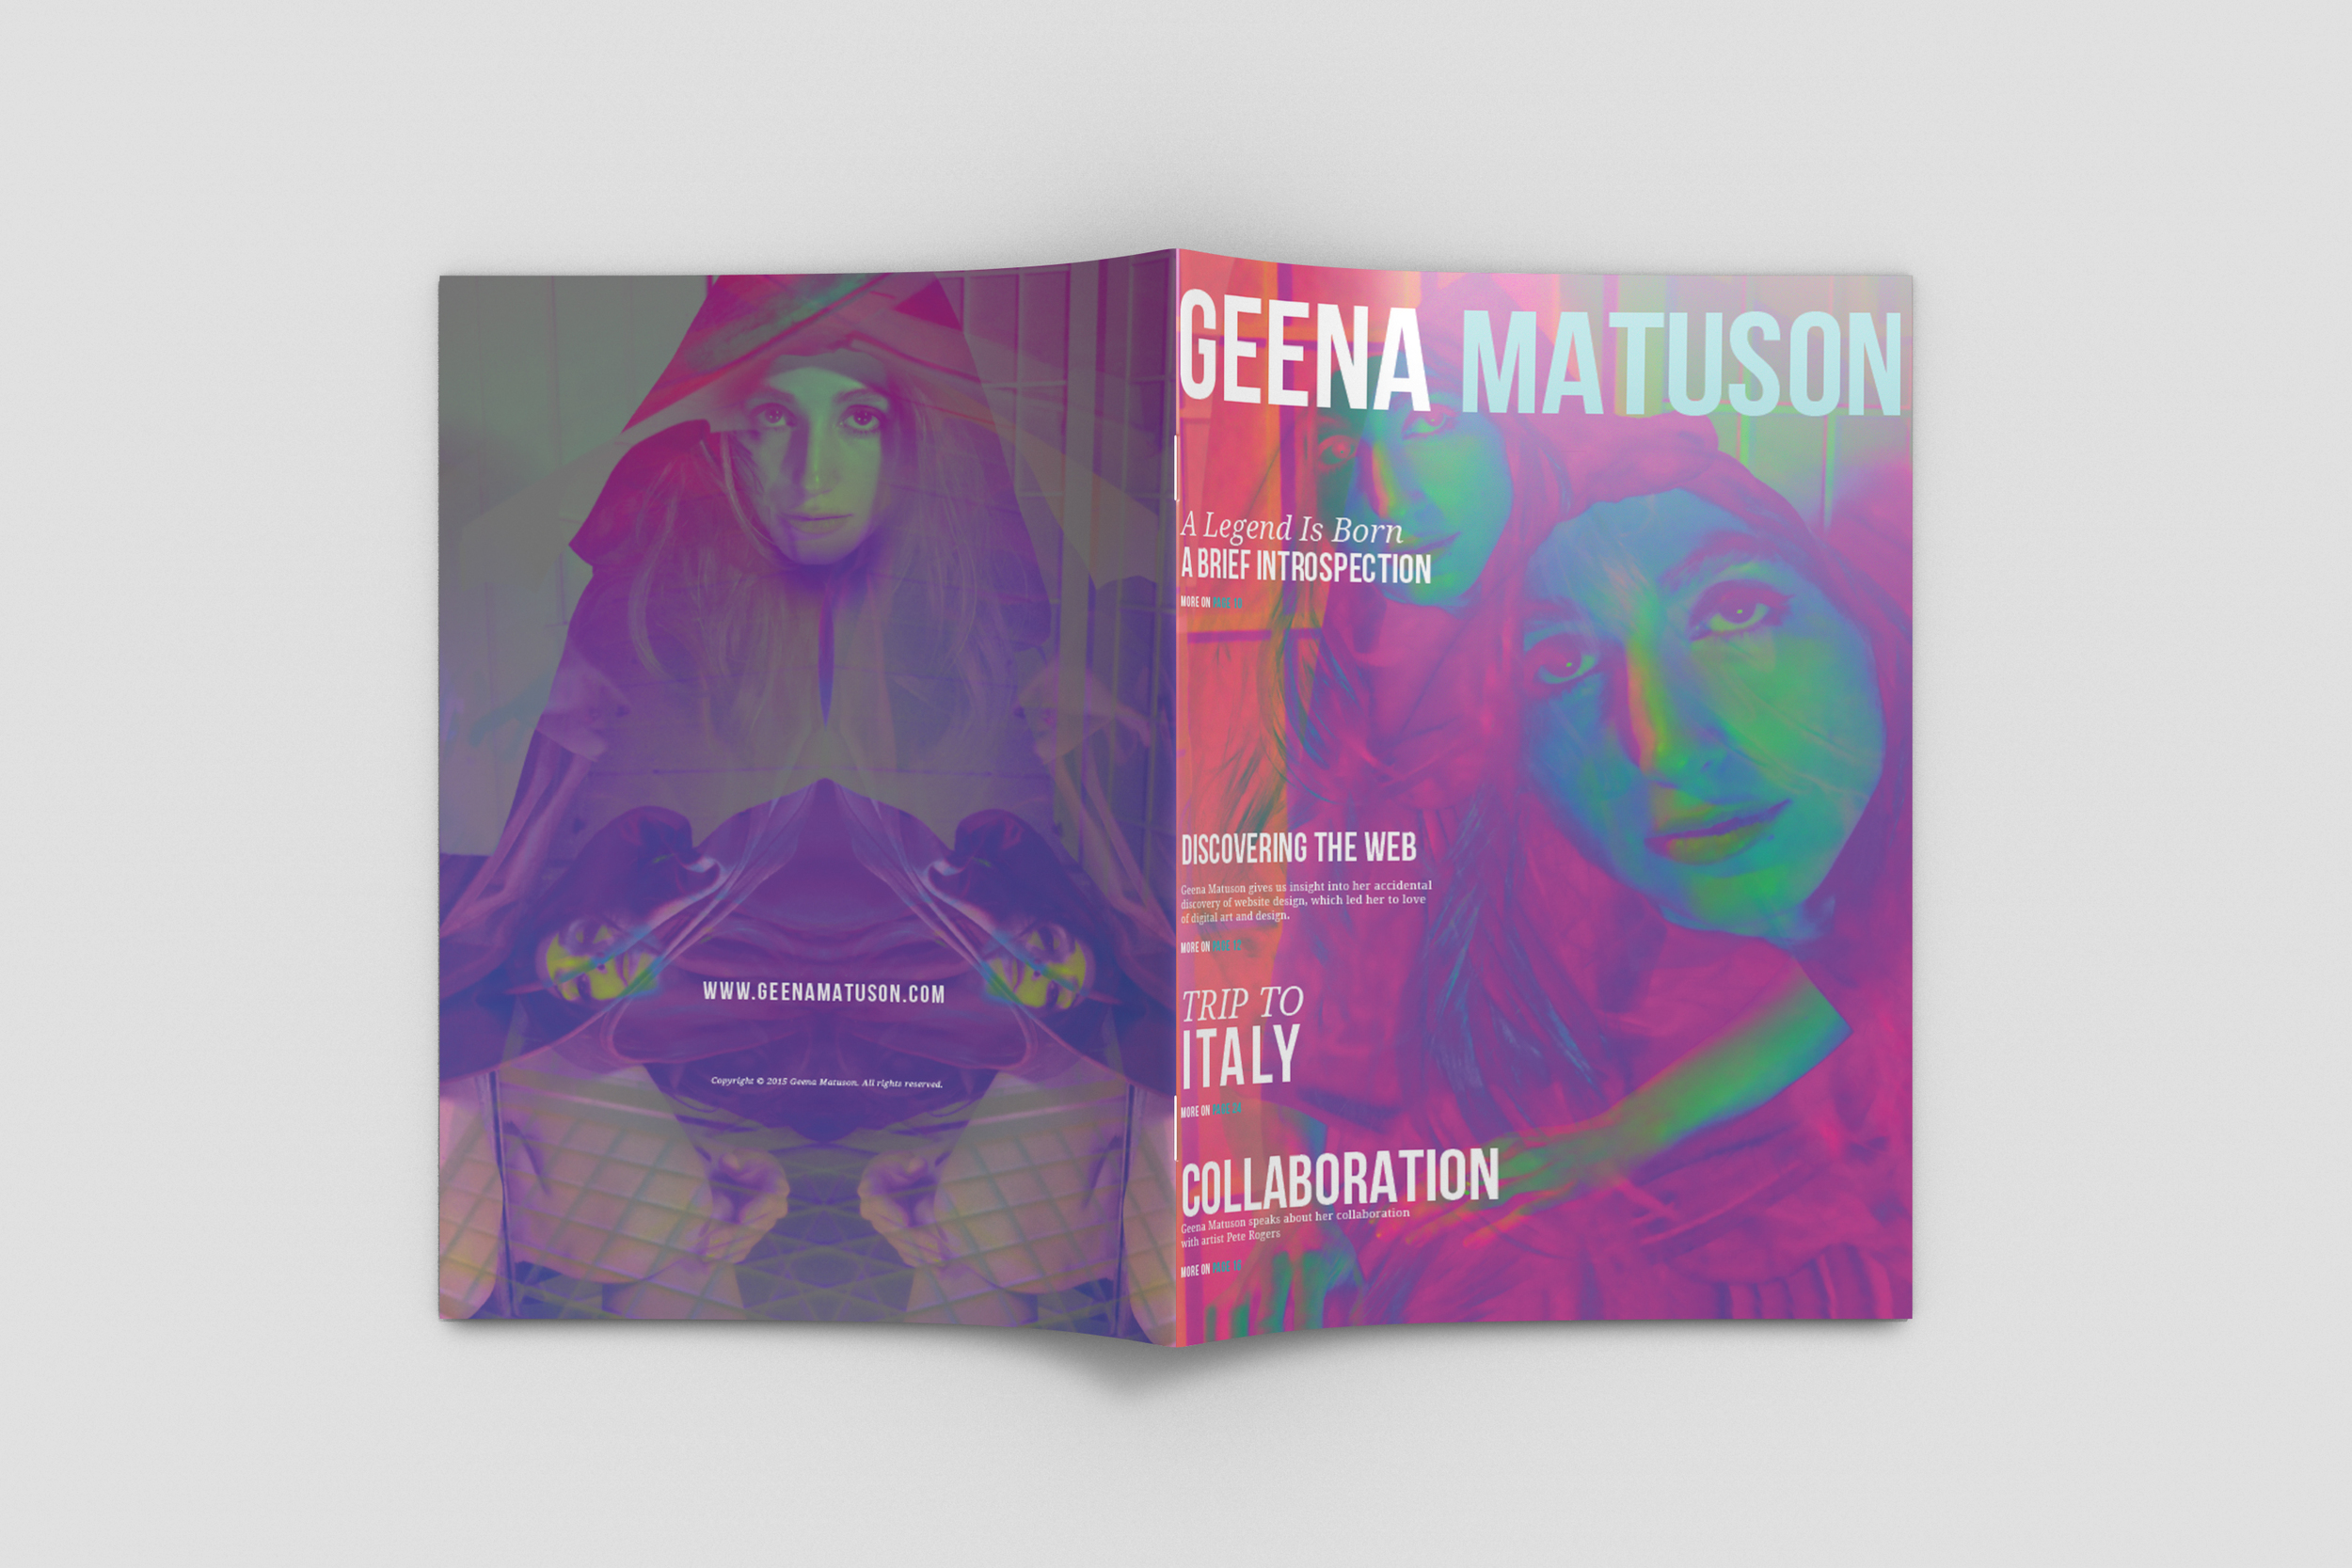 GeenaMatuson_Magazine_Covers_Sept2015.jpg